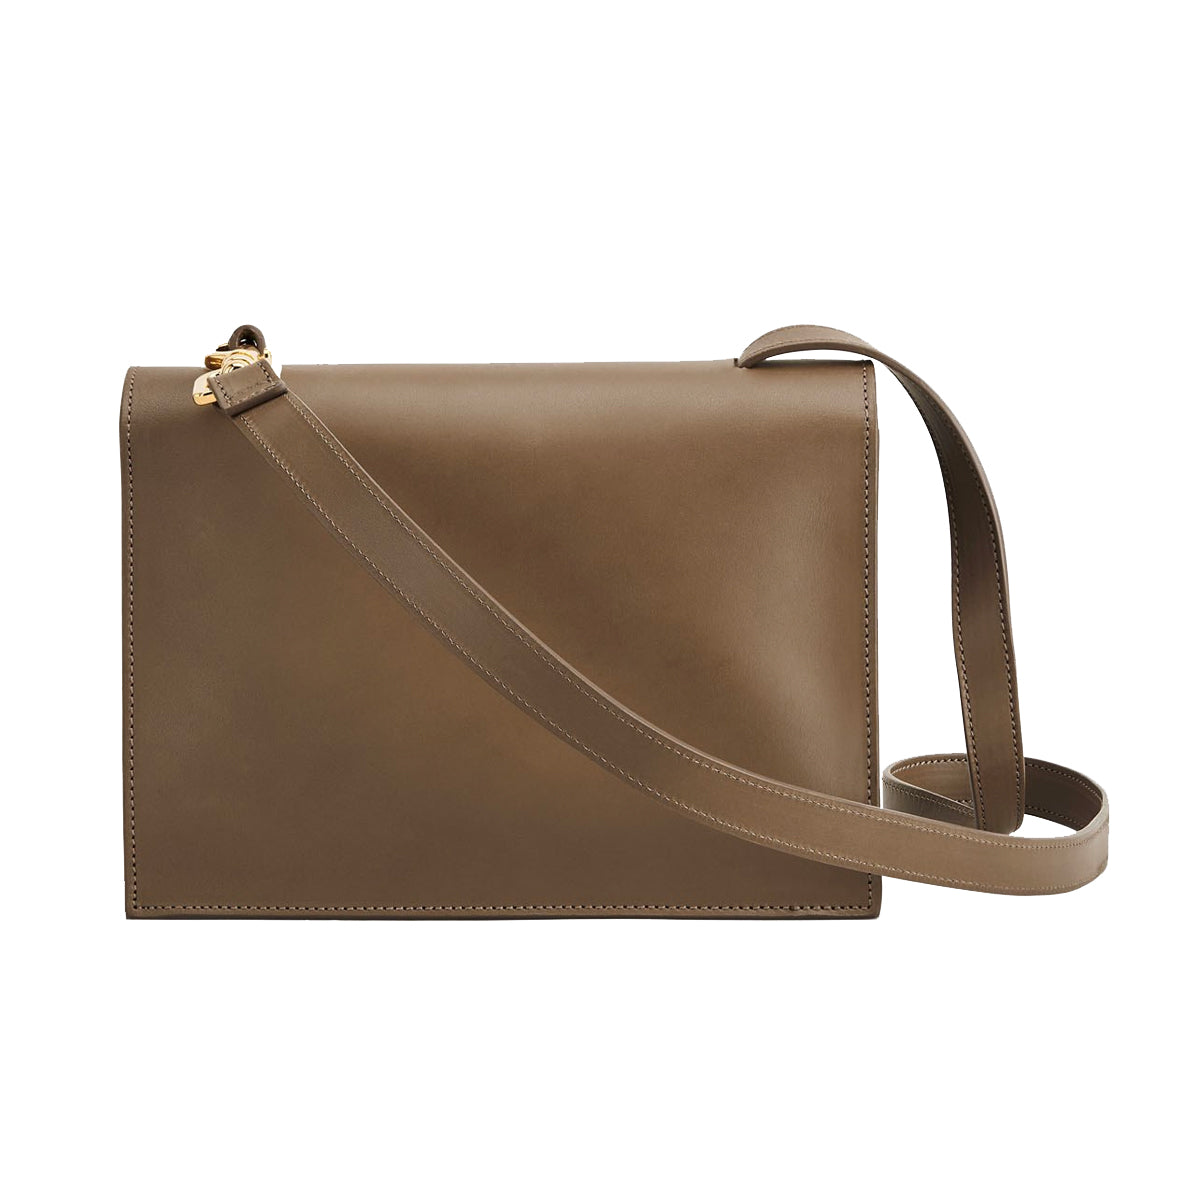 Siena Leather Crossbody Bag